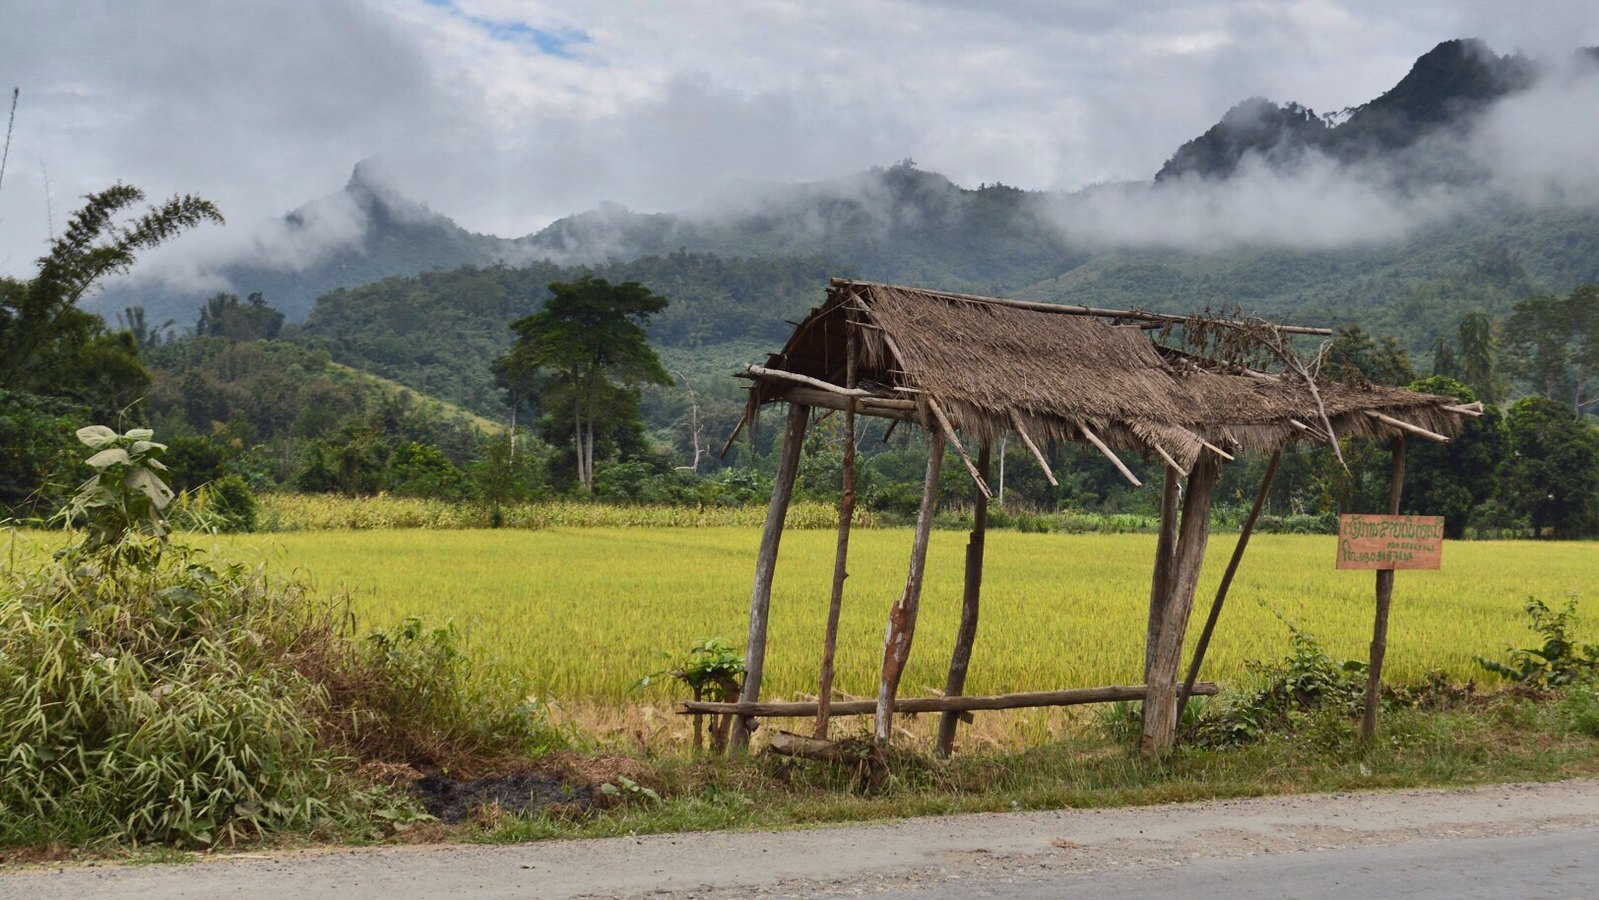 Laos rice fields with mountain scenery